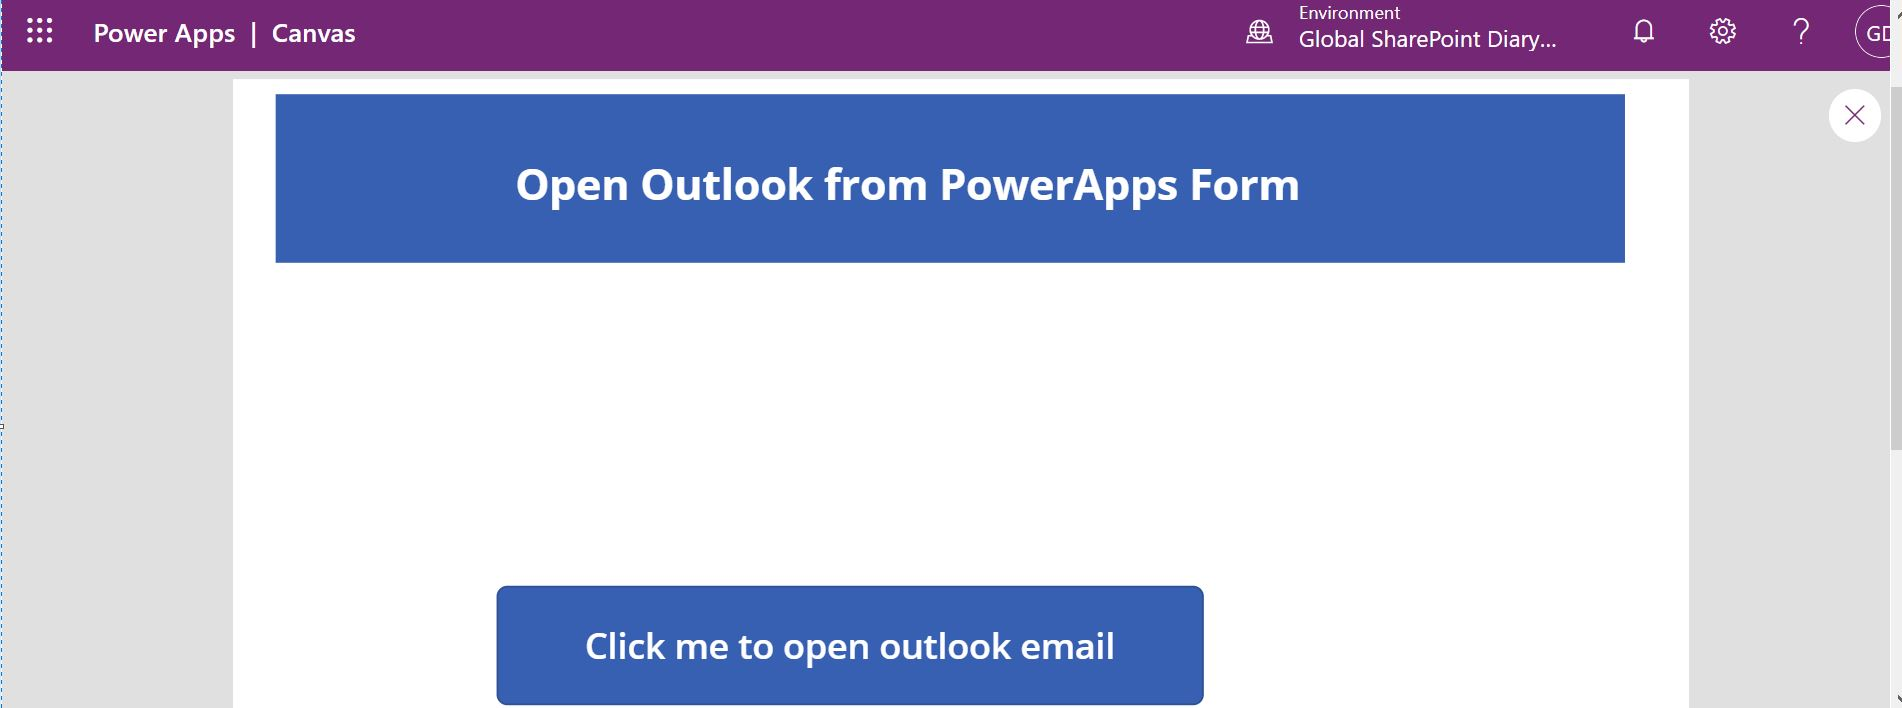 Preview the open outlook form from PowerApps